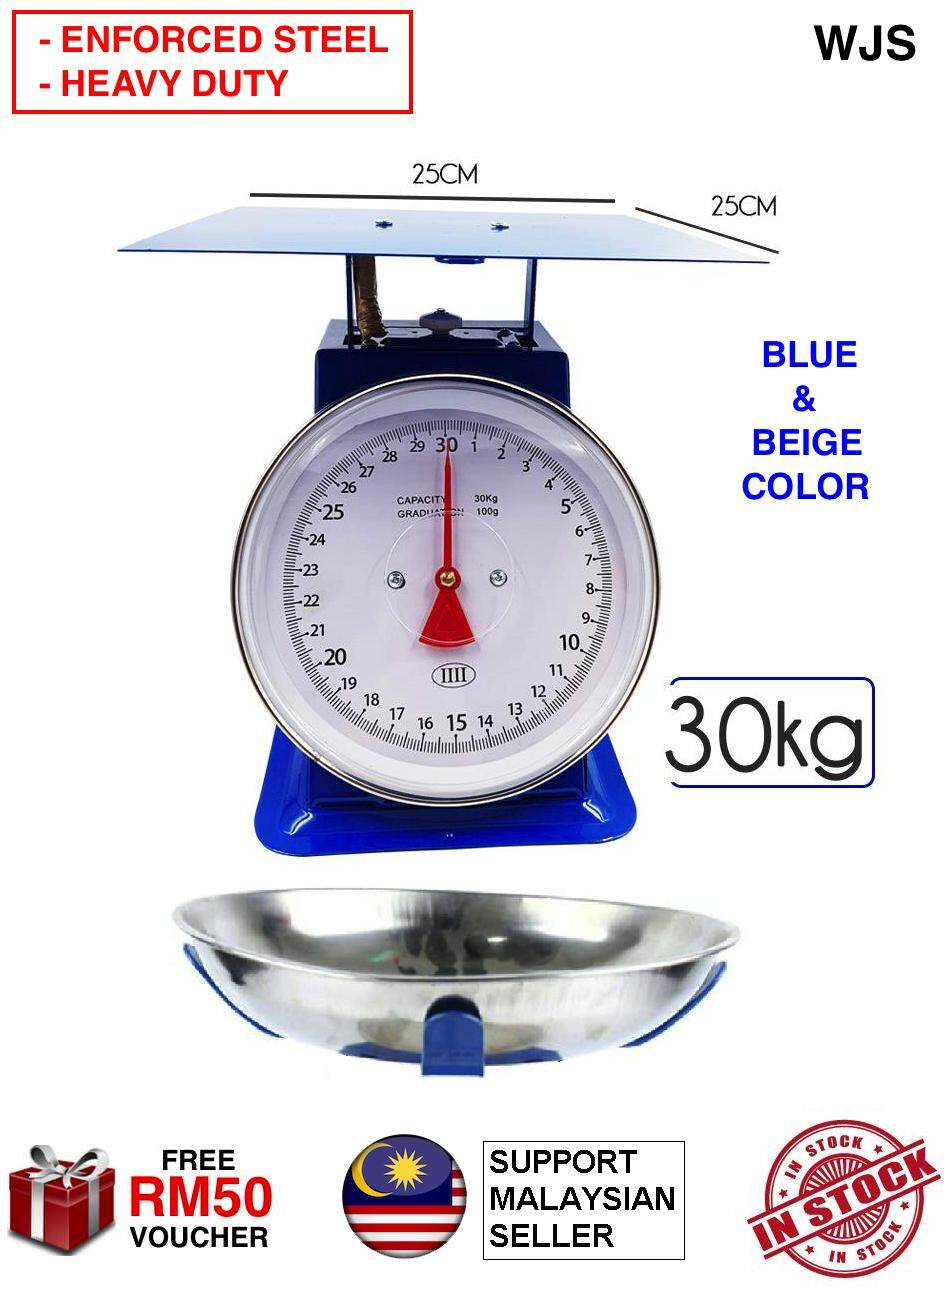 (ENFORCED METAL EXTRA DURABLE) WJS IIII 30KG Analog Scale Commercial Scale Industrial Scale And Kitchen Mechanical Weighing Scale BLUE BEIGE TRAY OR PLATE OPTION [FREE RM 50 VOUCHER]